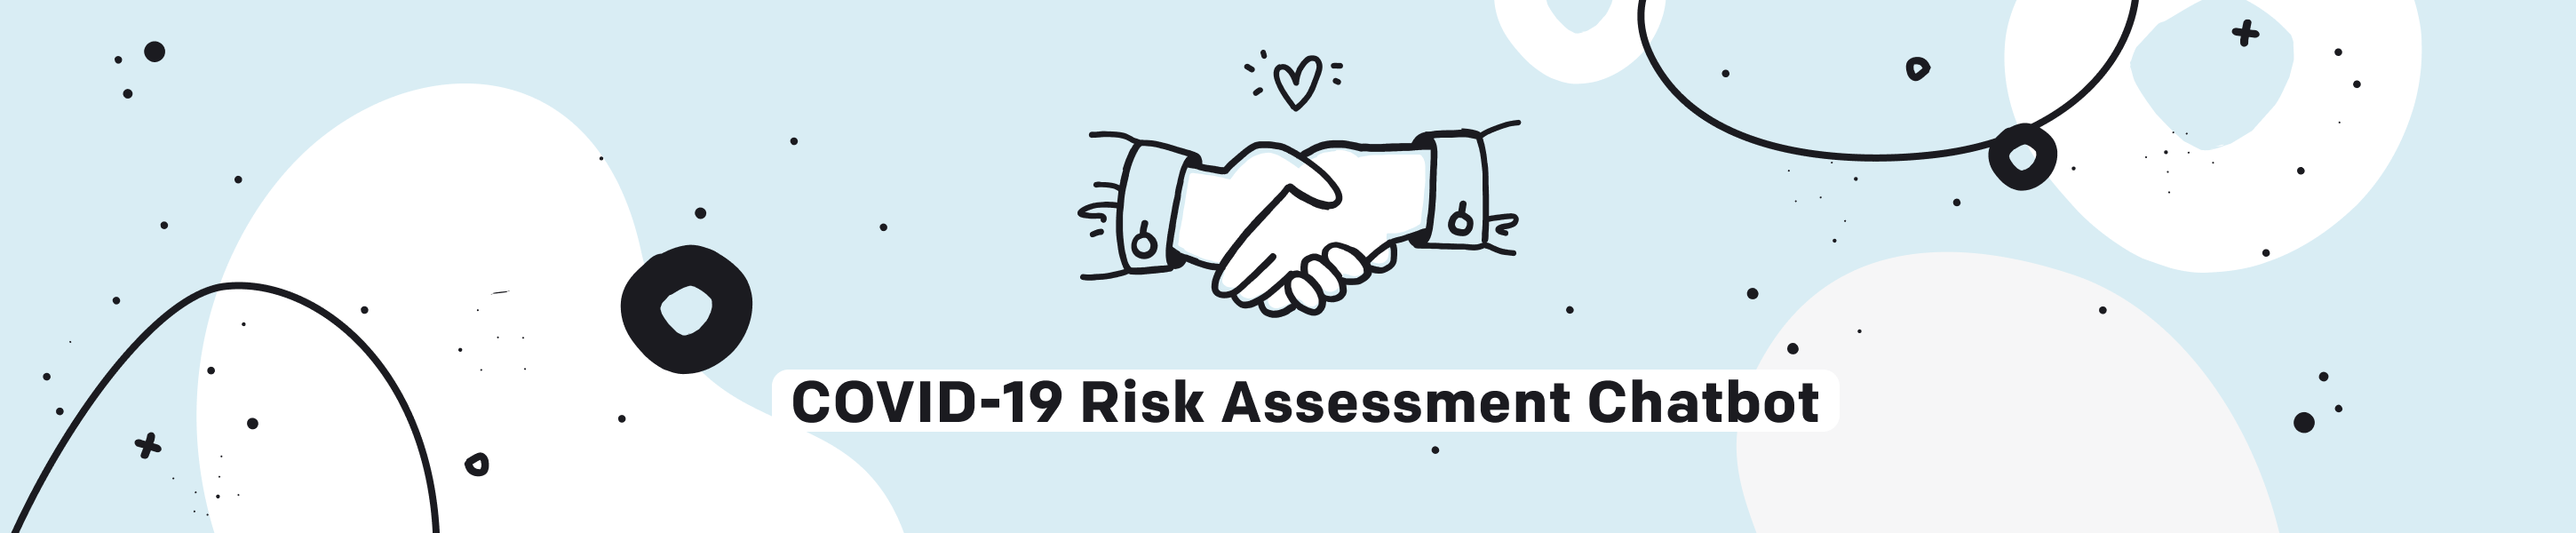 Header for The COVID-19 Risk Assessment Chatbot Helps Businesses Create a Safer Workplace